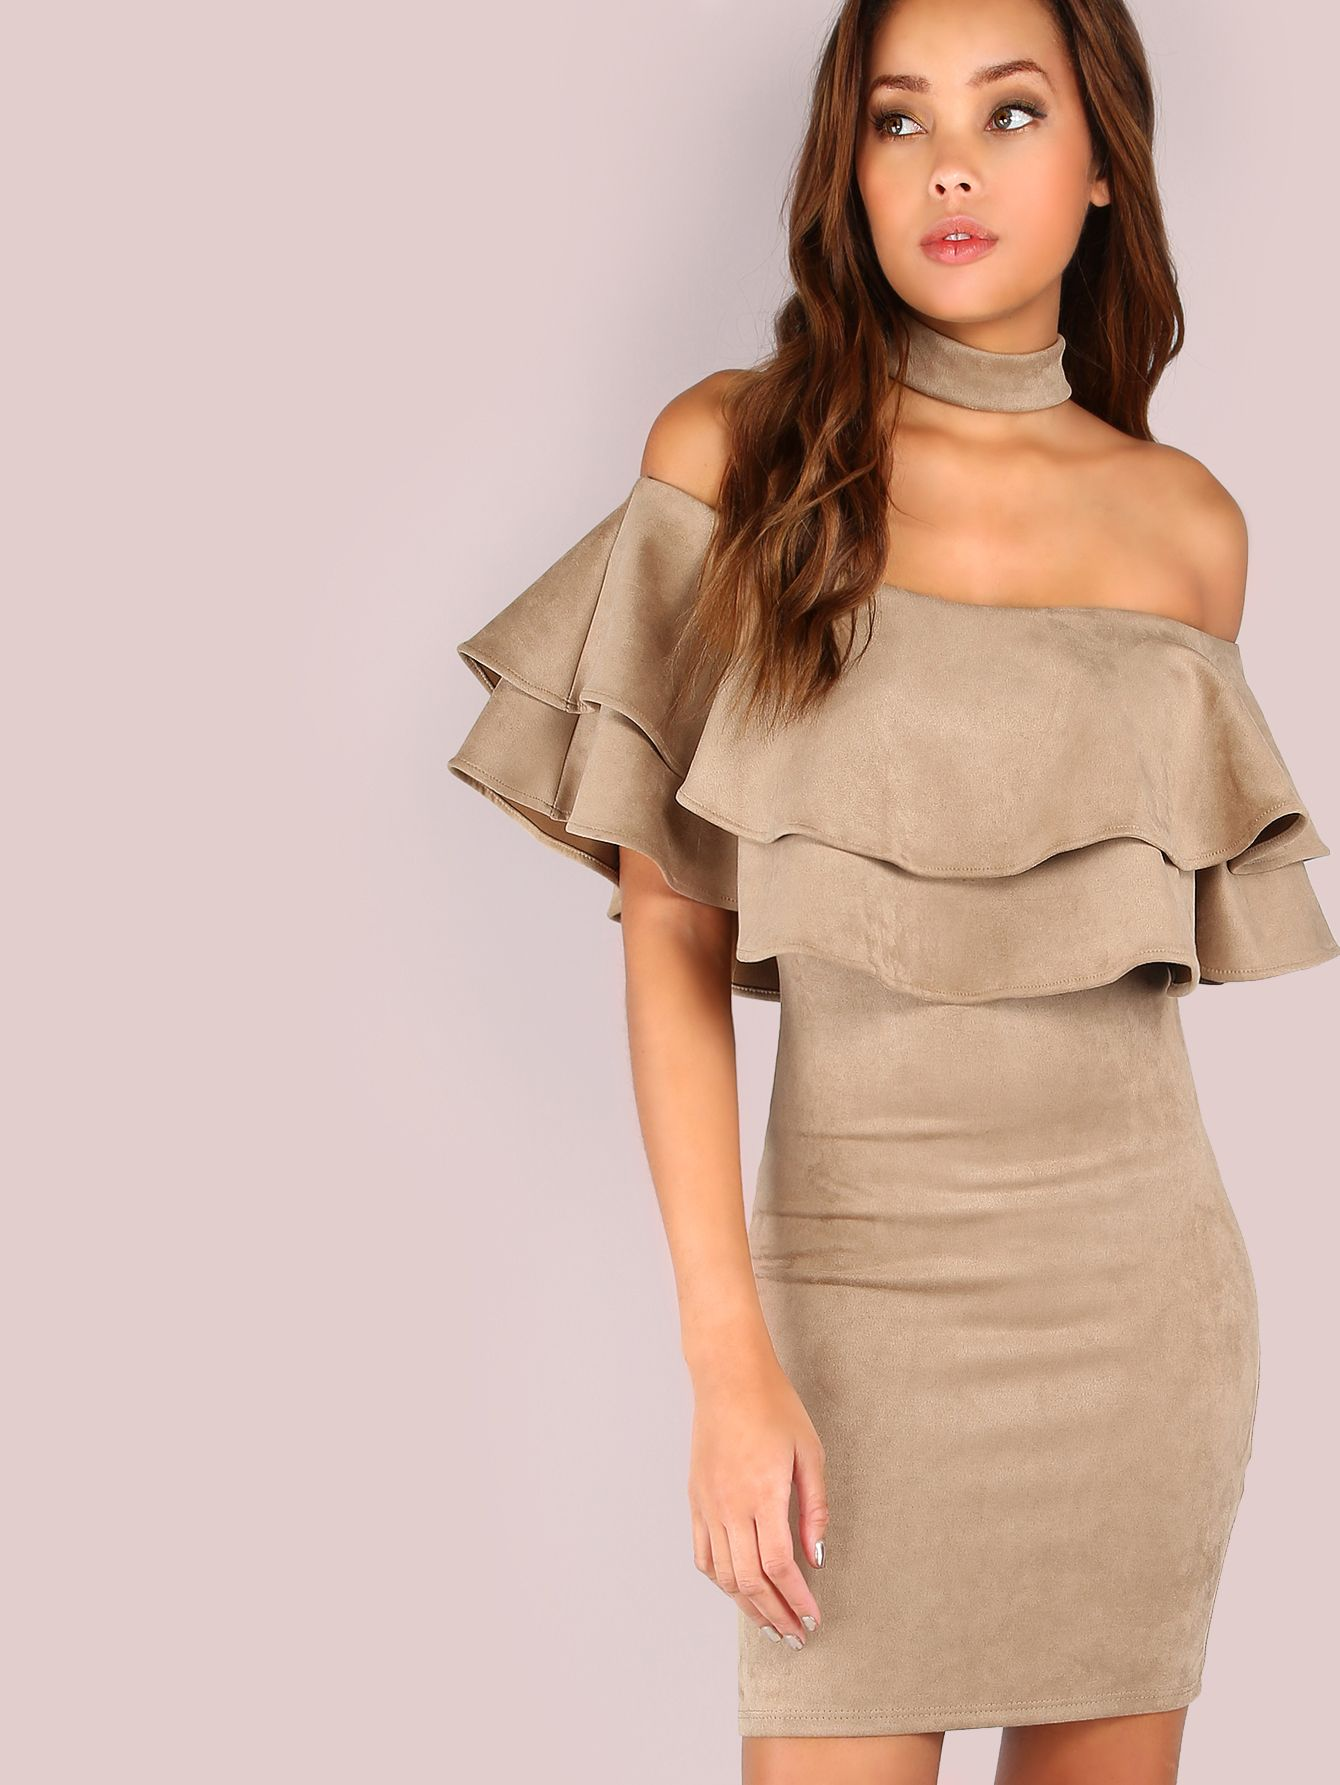 7d5295b8347da3 Shop Ruffle Suede Choker Dress TAUPE online. SheIn offers Ruffle Suede  Choker Dress TAUPE   more to fit your fashionable needs.